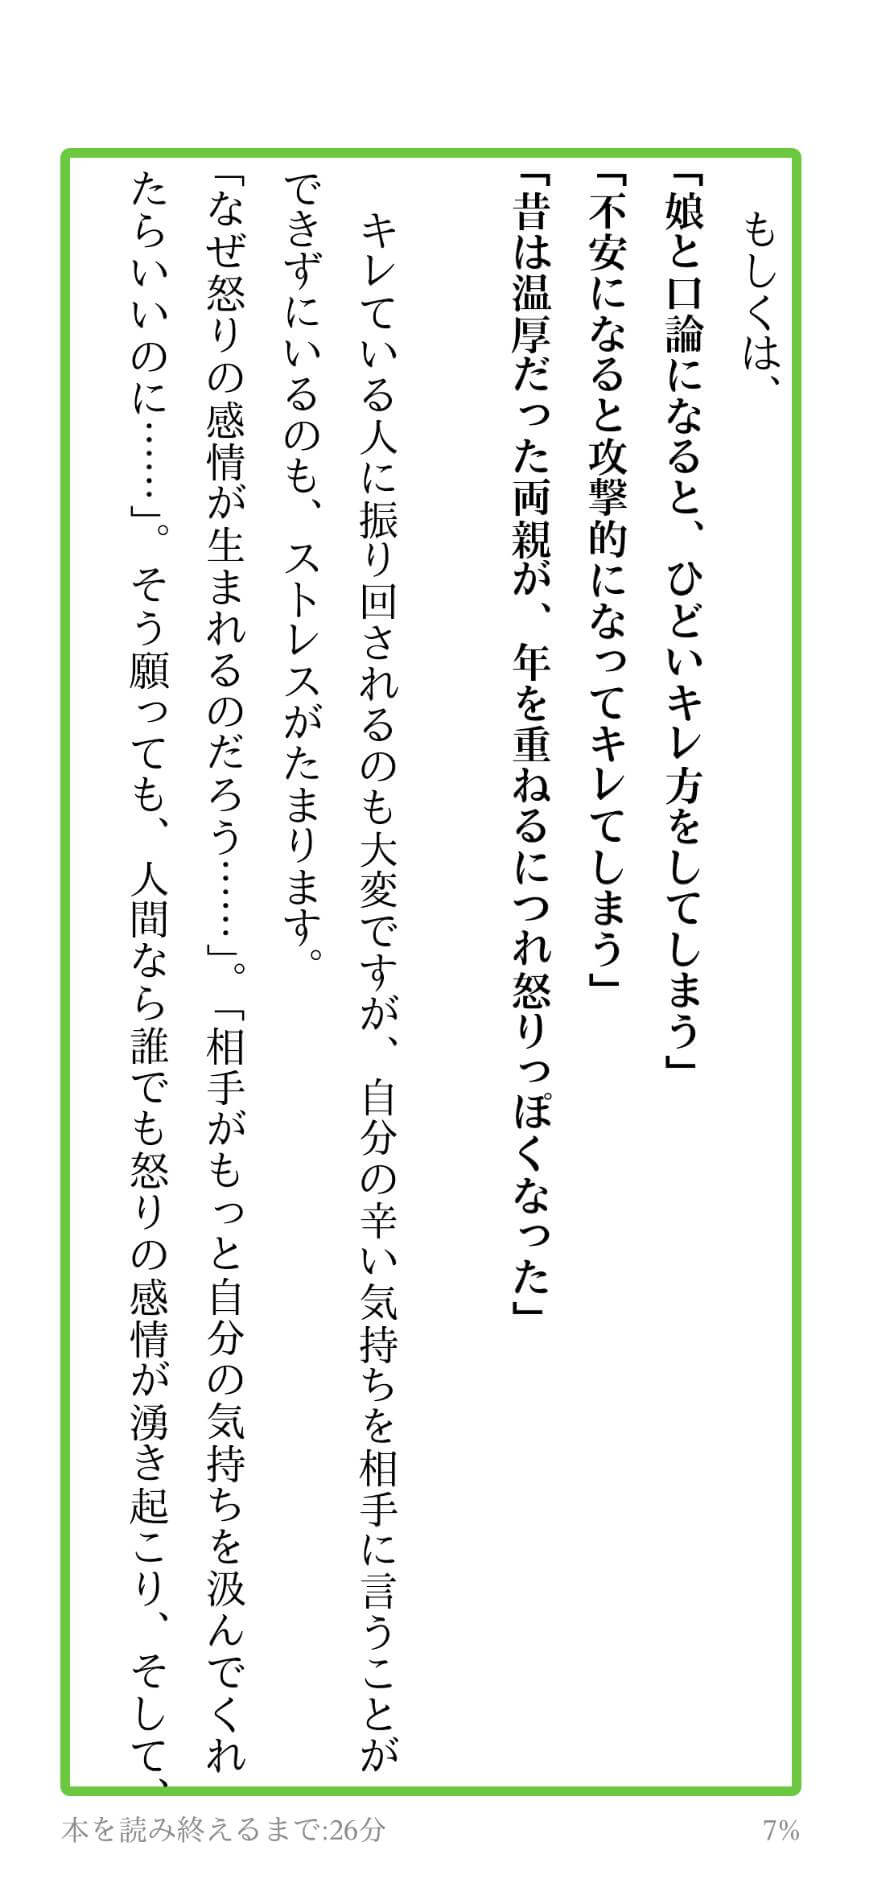 Androidkindle読みあげやり方